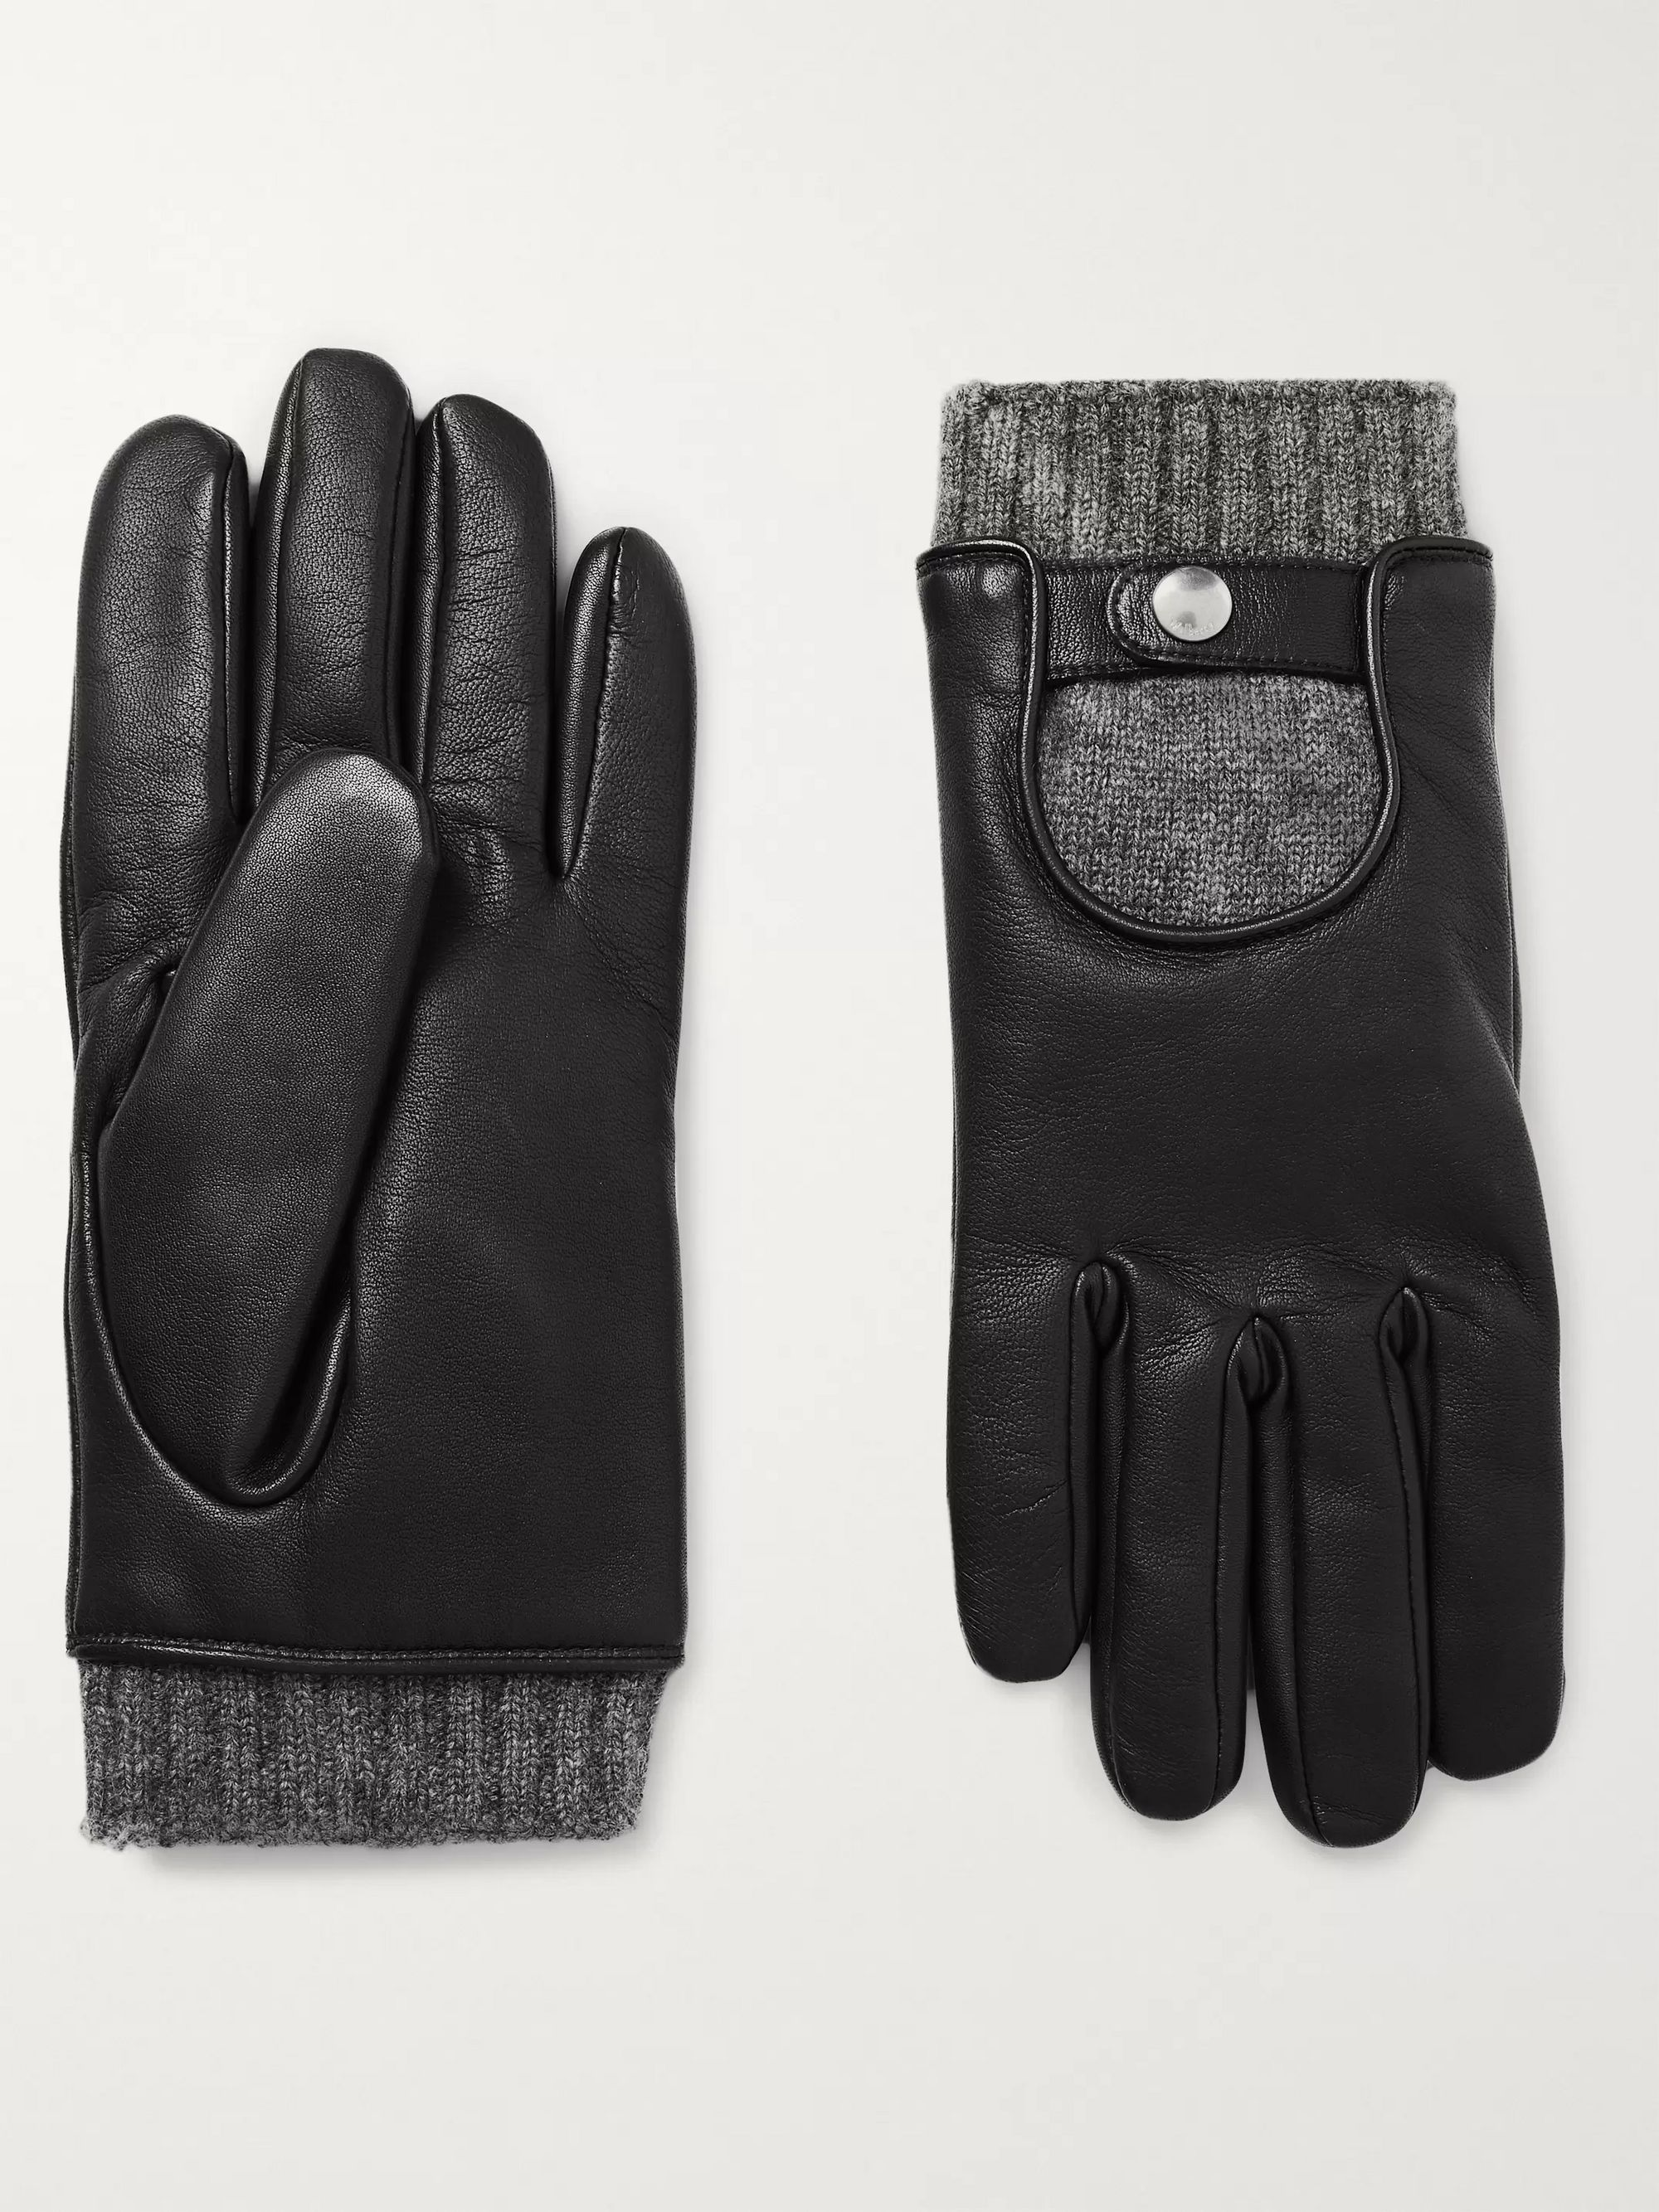 Mulberry Cashmere-Lined Leather Gloves